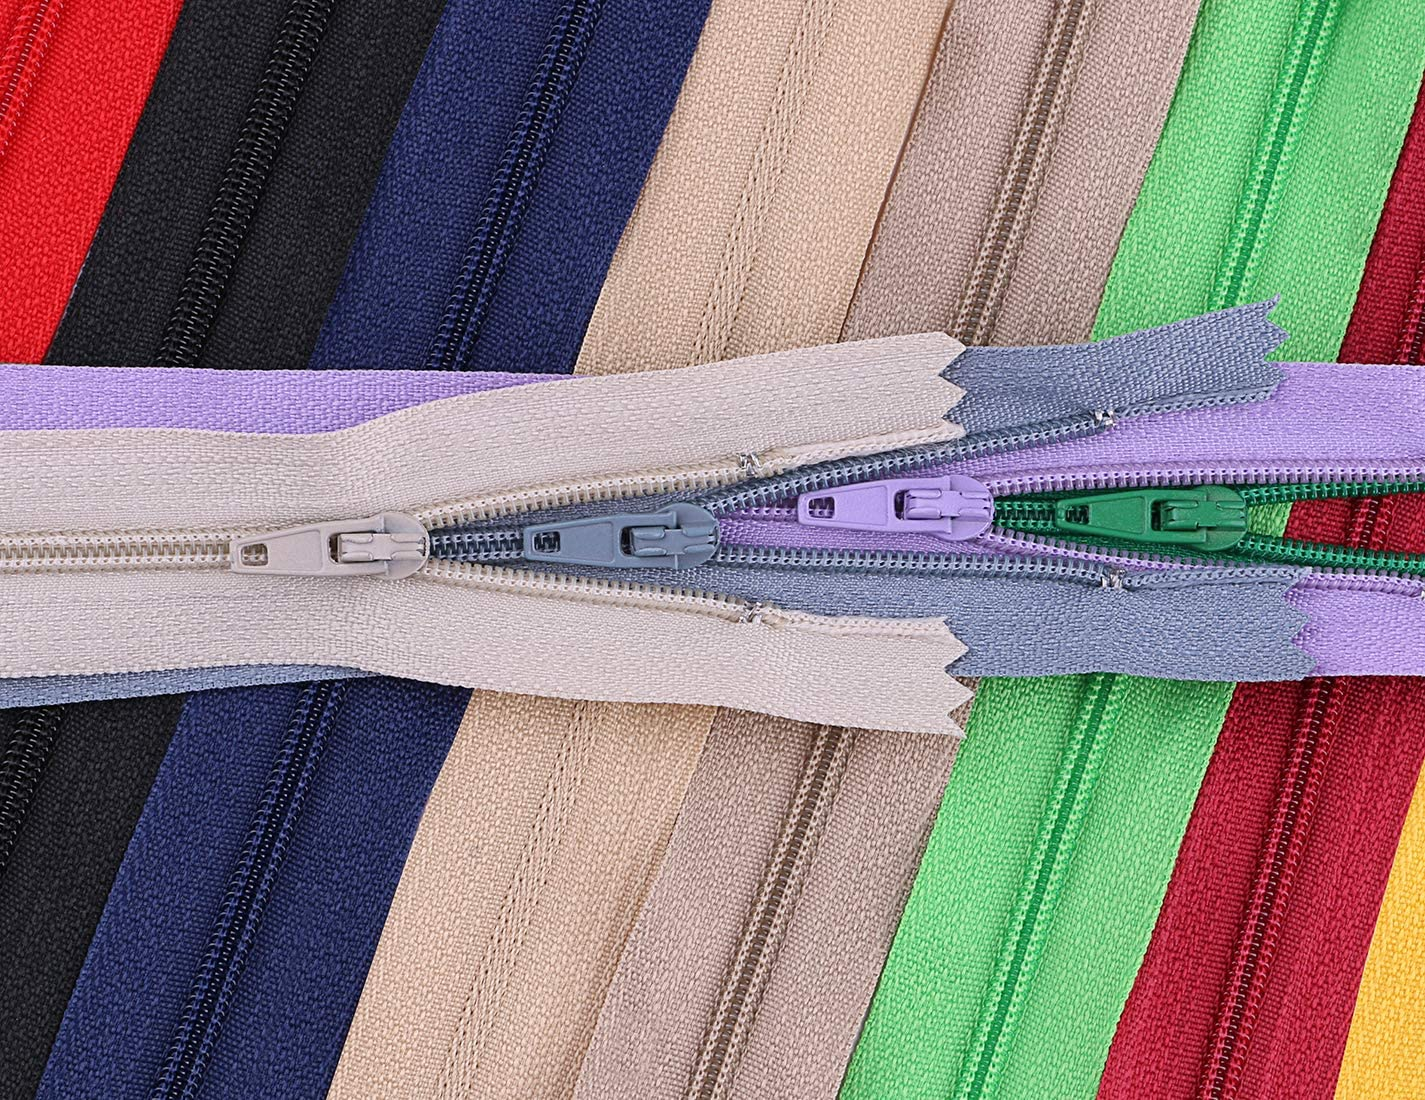 Driew Zipper 9 Inches Pack of 66 Coil Zippers Replacement Bulk Sewing Crafting Tailor DIY Material Mixed Color